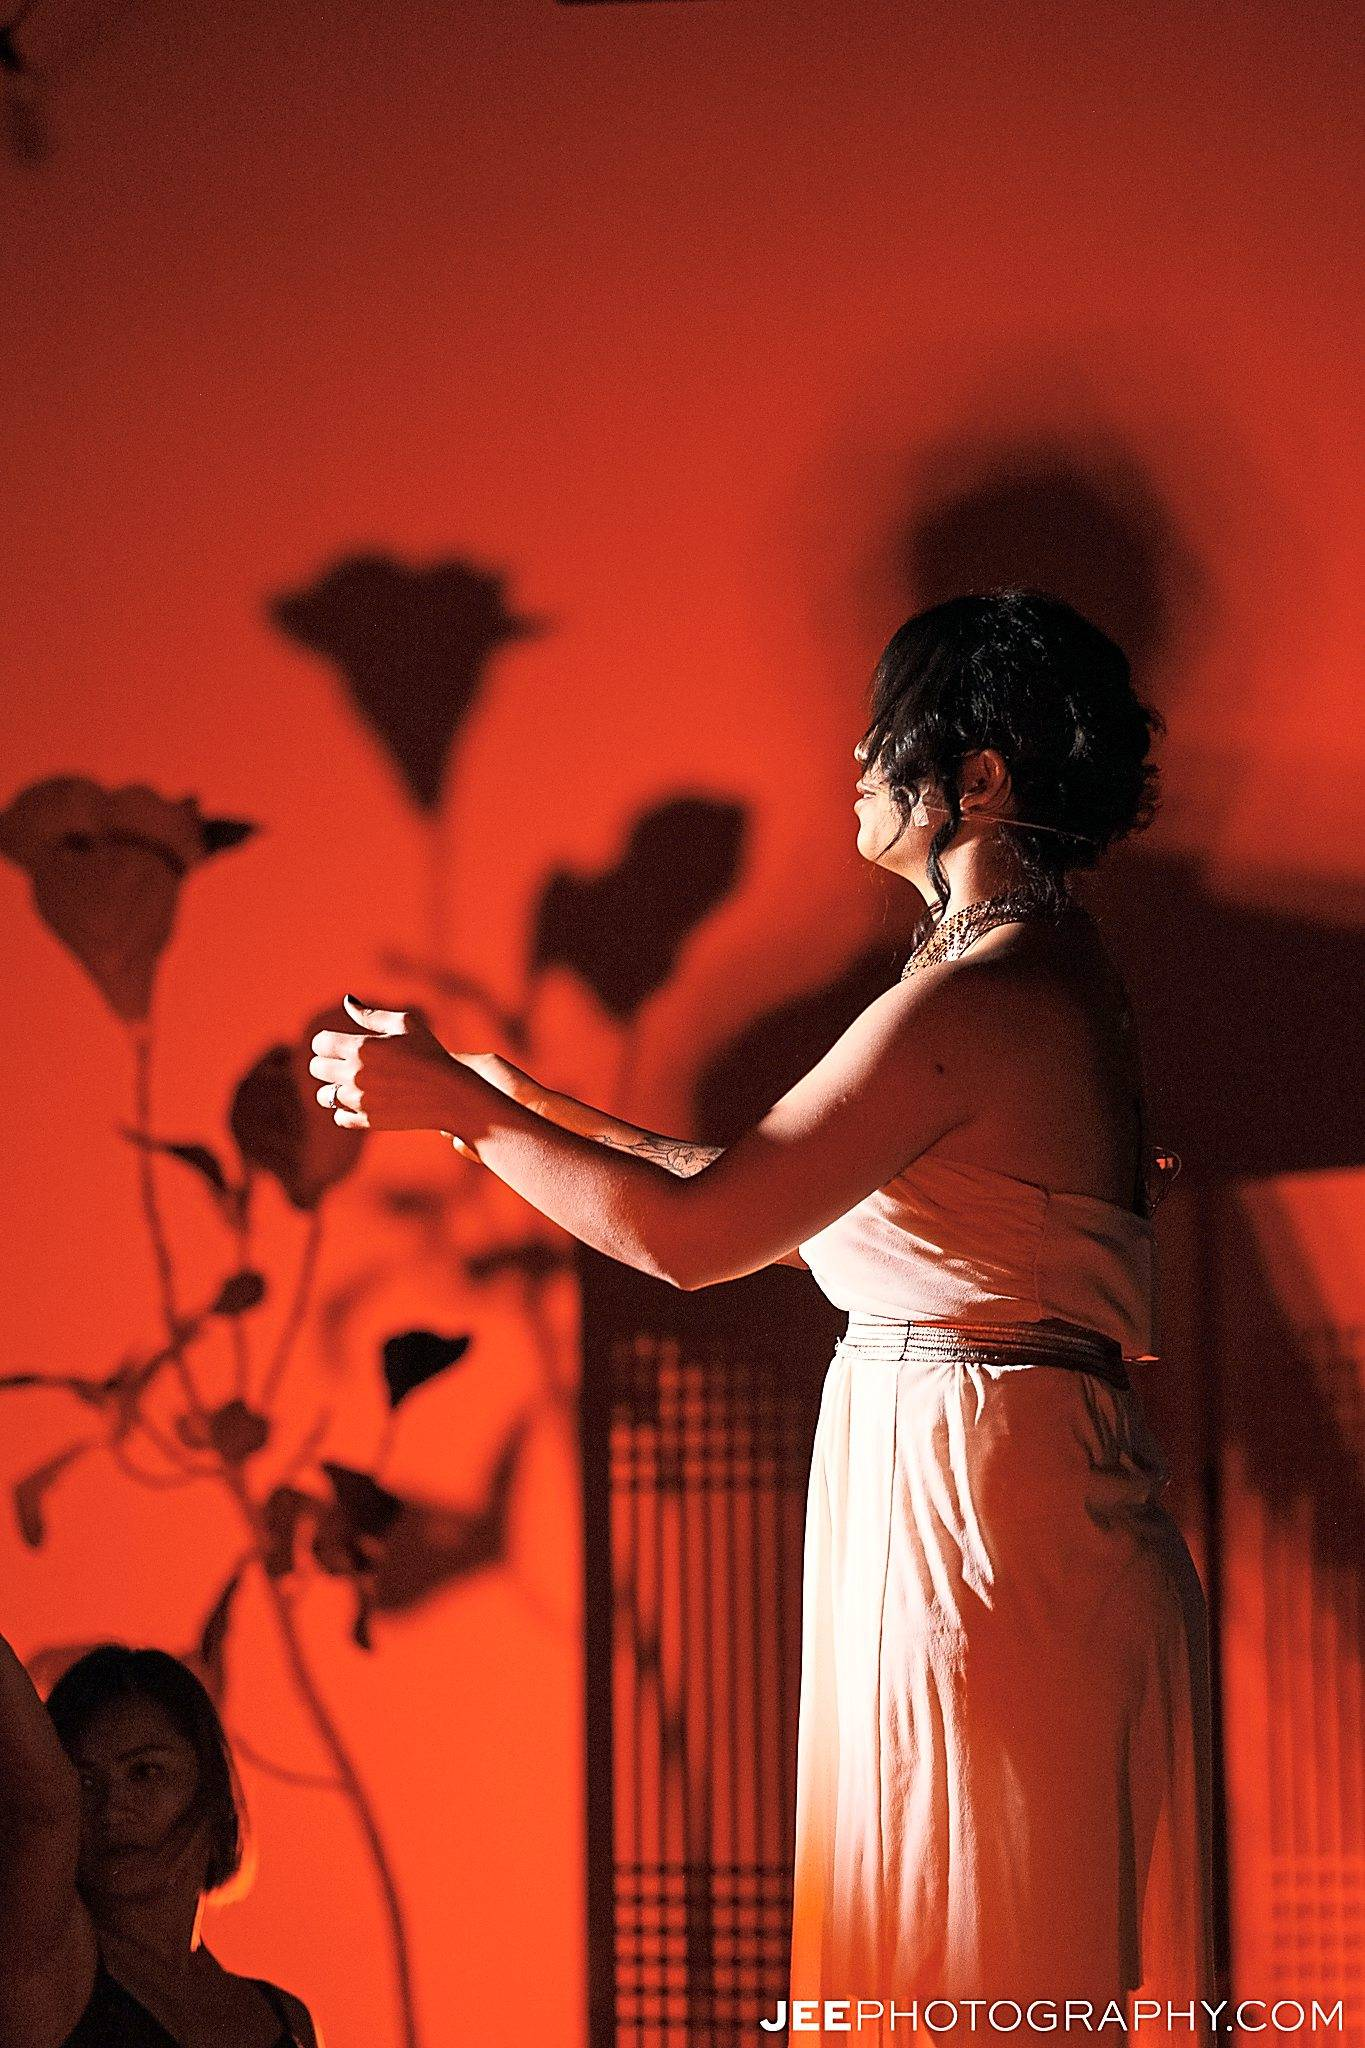 Performer Alia Kearney stops to smell the 'flowers'. Photo: Jee Photography